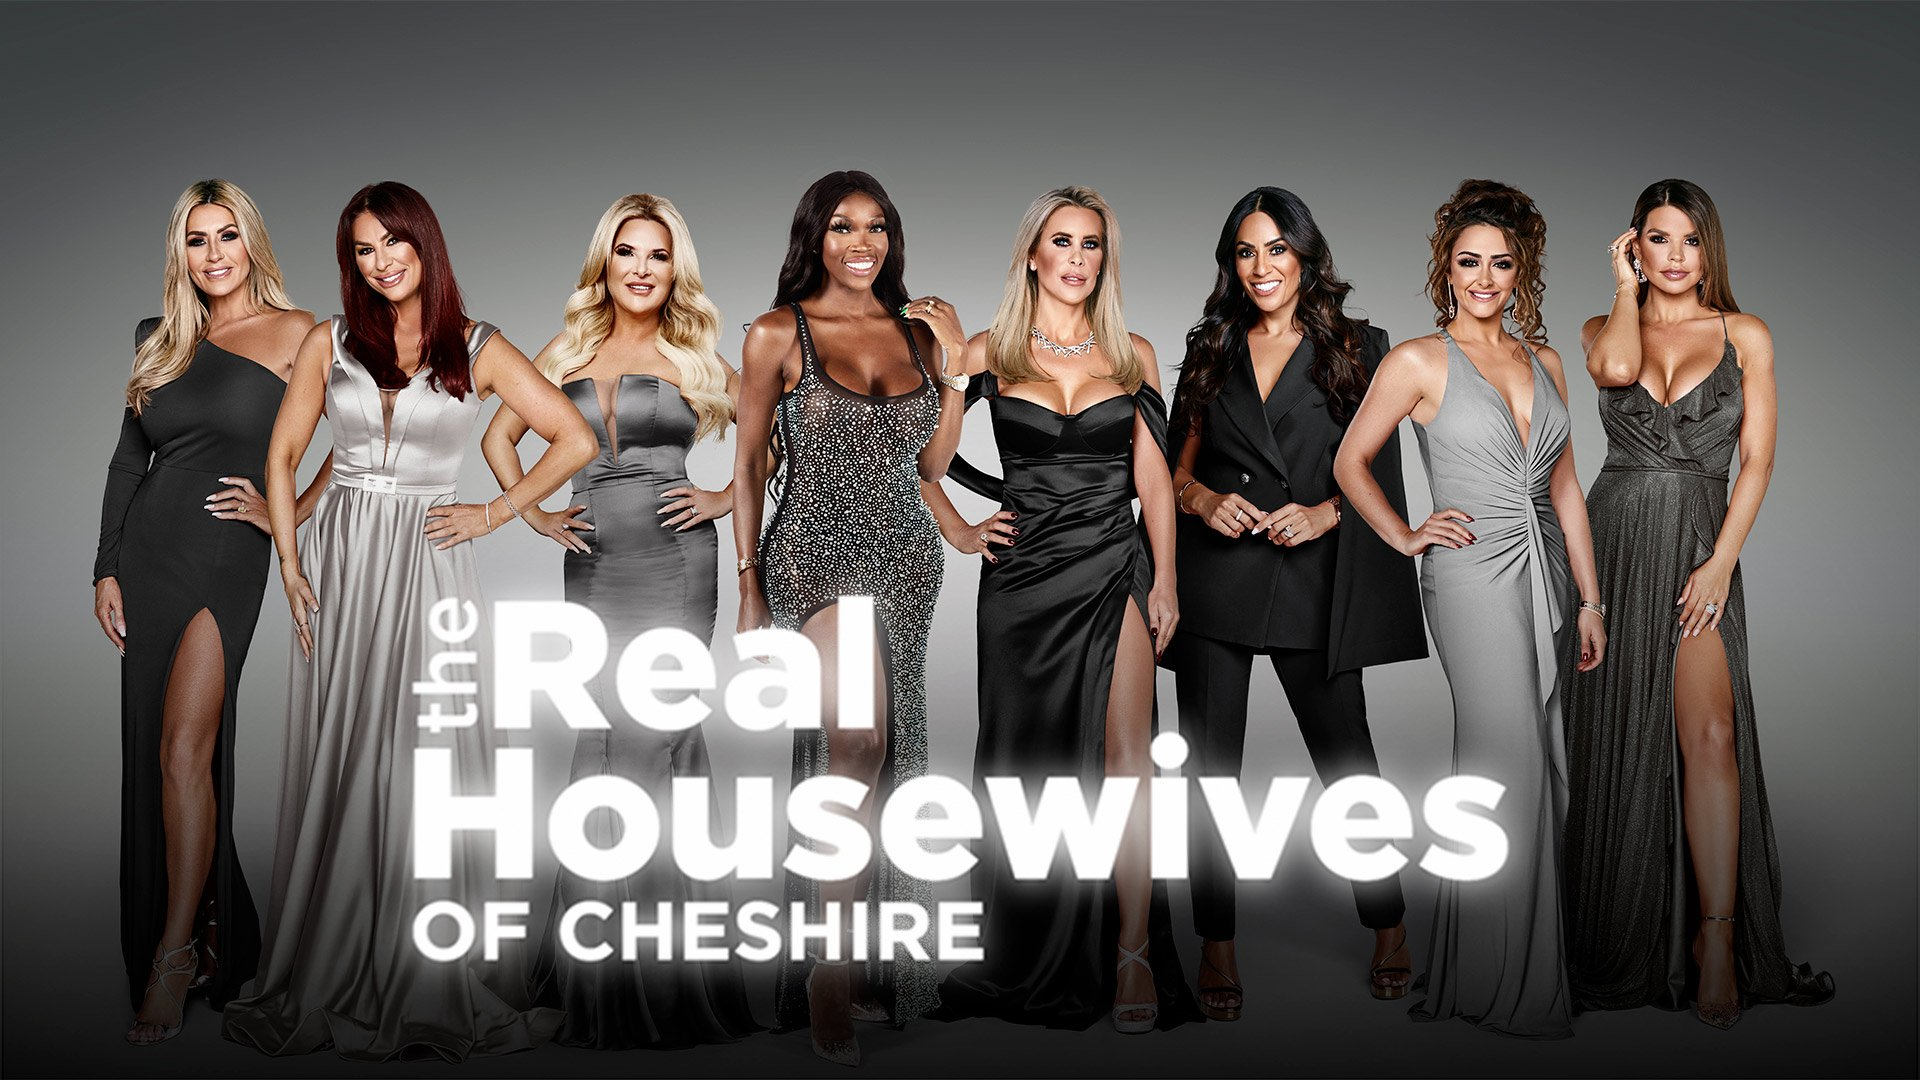 The Real Housewives of Cheshire on BritBox UK